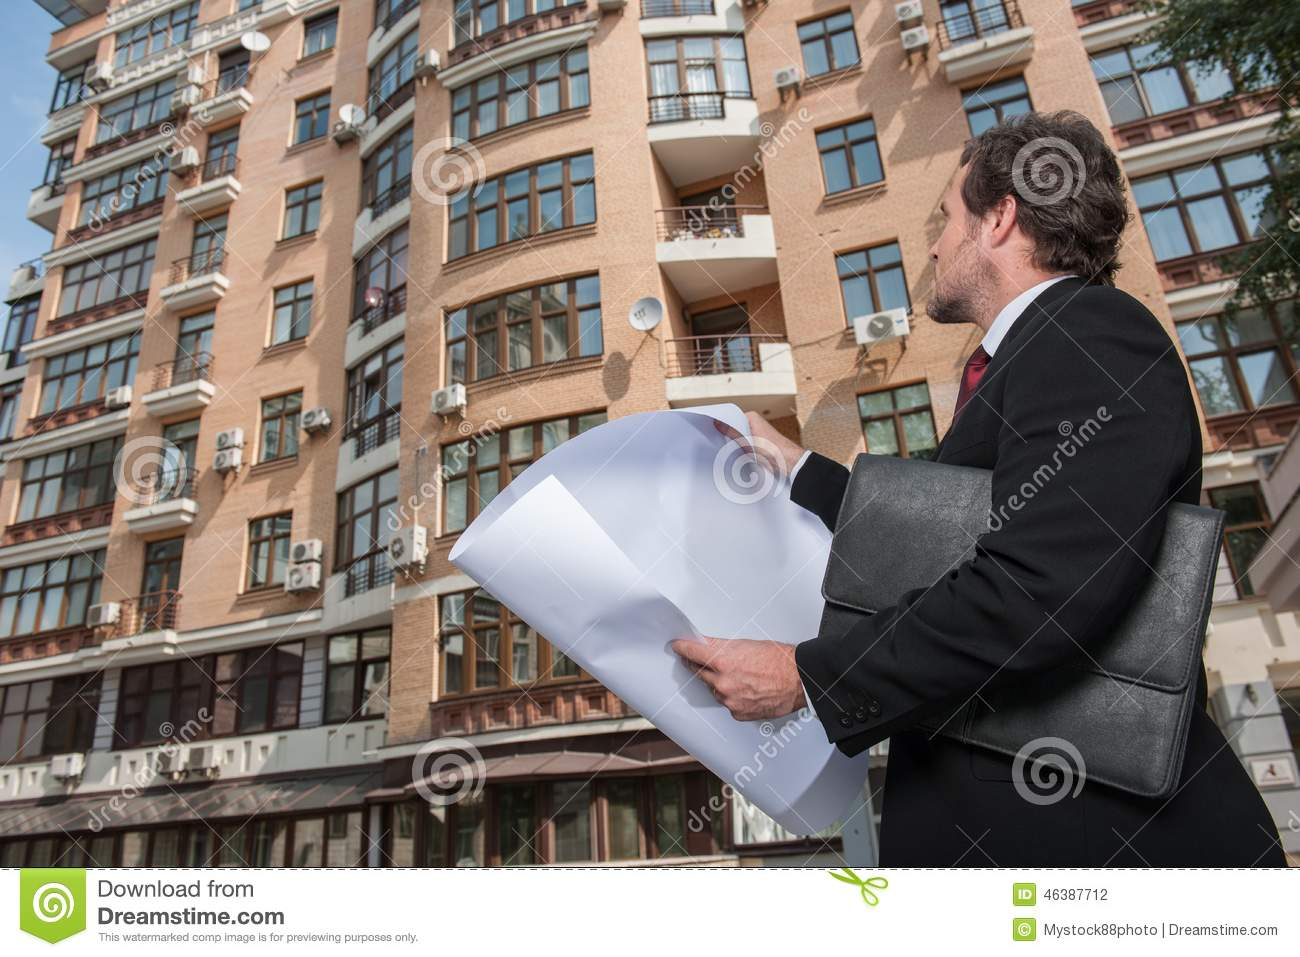 Architect surveying a new building plot royalty free stock for Looking for an architect to design a house